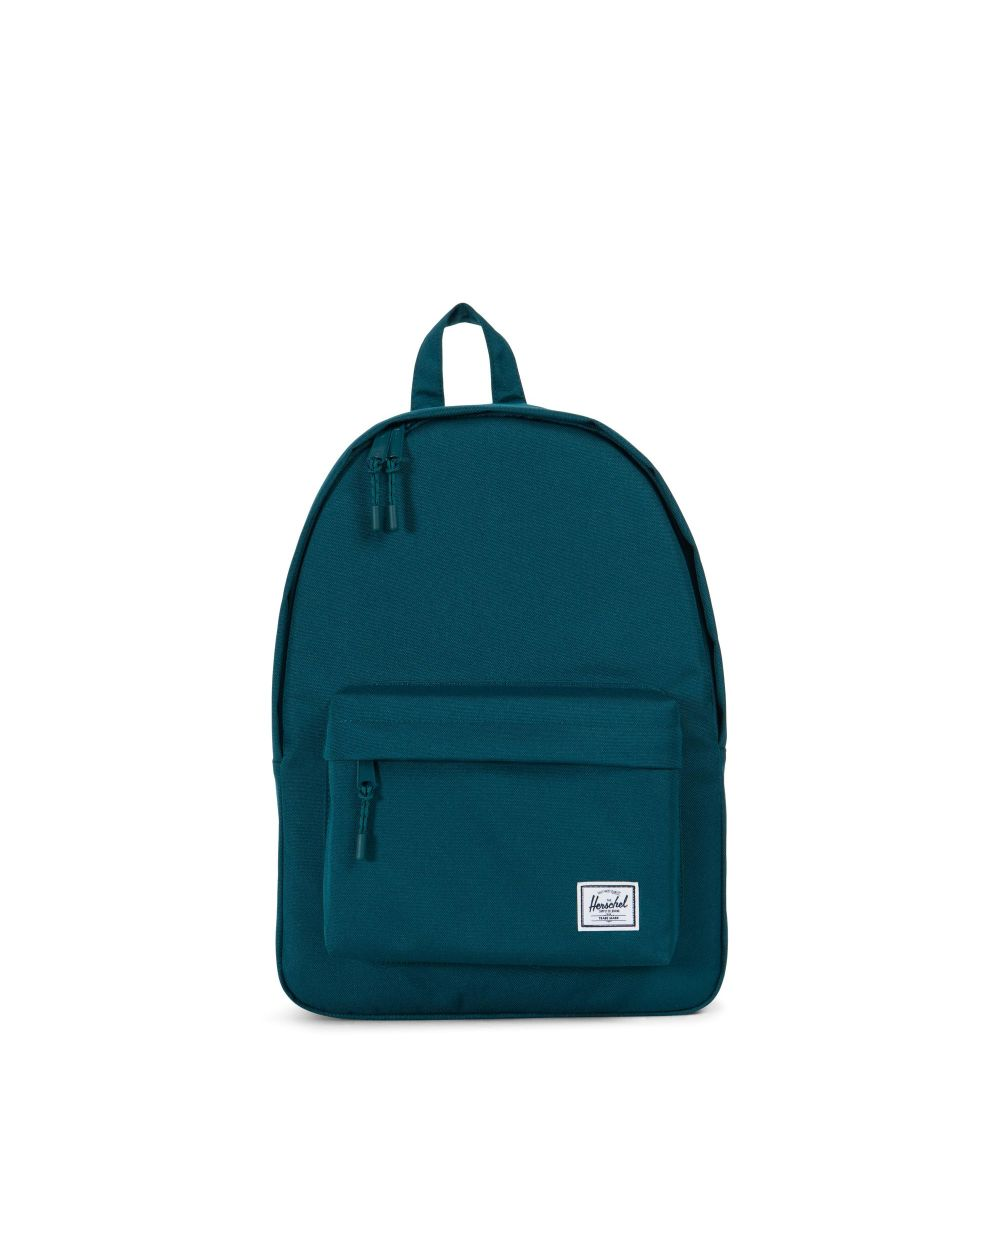 Shop Ua Bookstores Fjallraven Kanken Classic Backpack Royal Blue Pinstripe Pattern Herschel Deep Teal